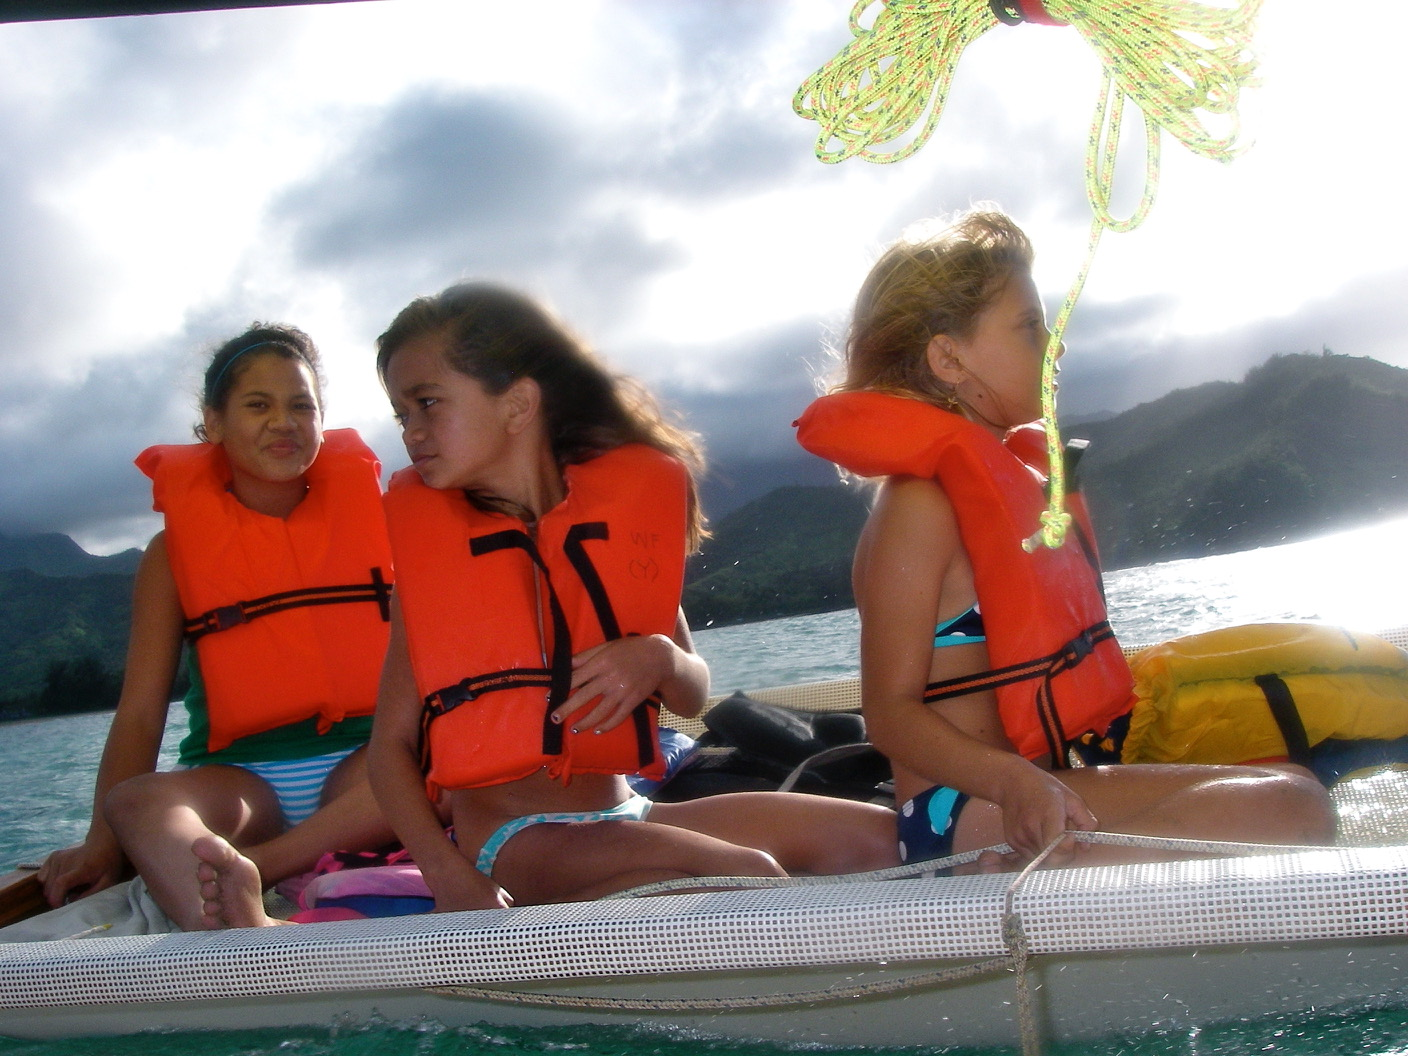 Summer Program Kids for Sailing and Water Safety3.jpg